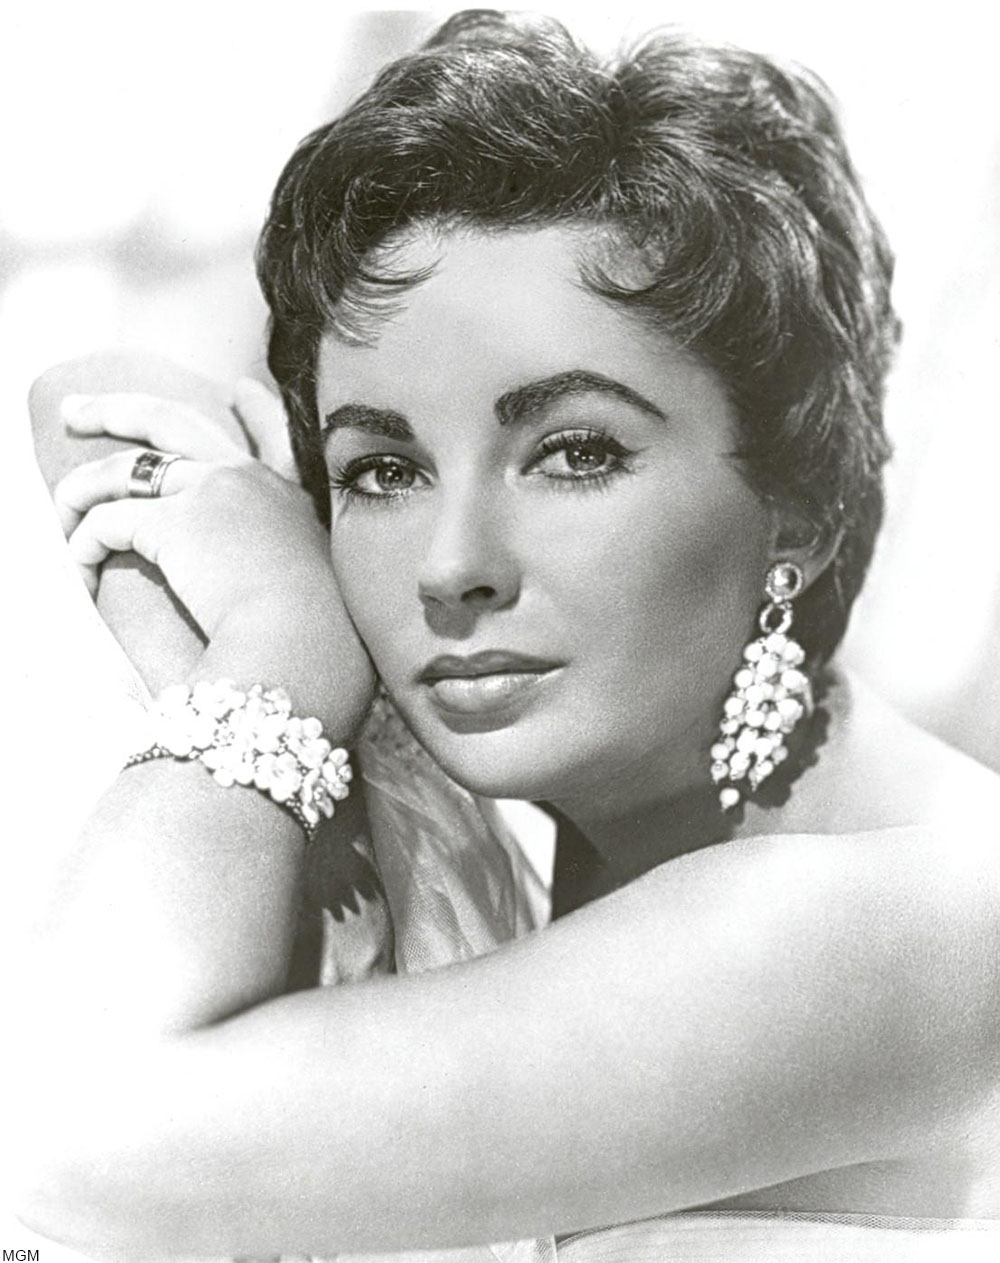 early 1950s publicity photo of Elizabeth Taylor